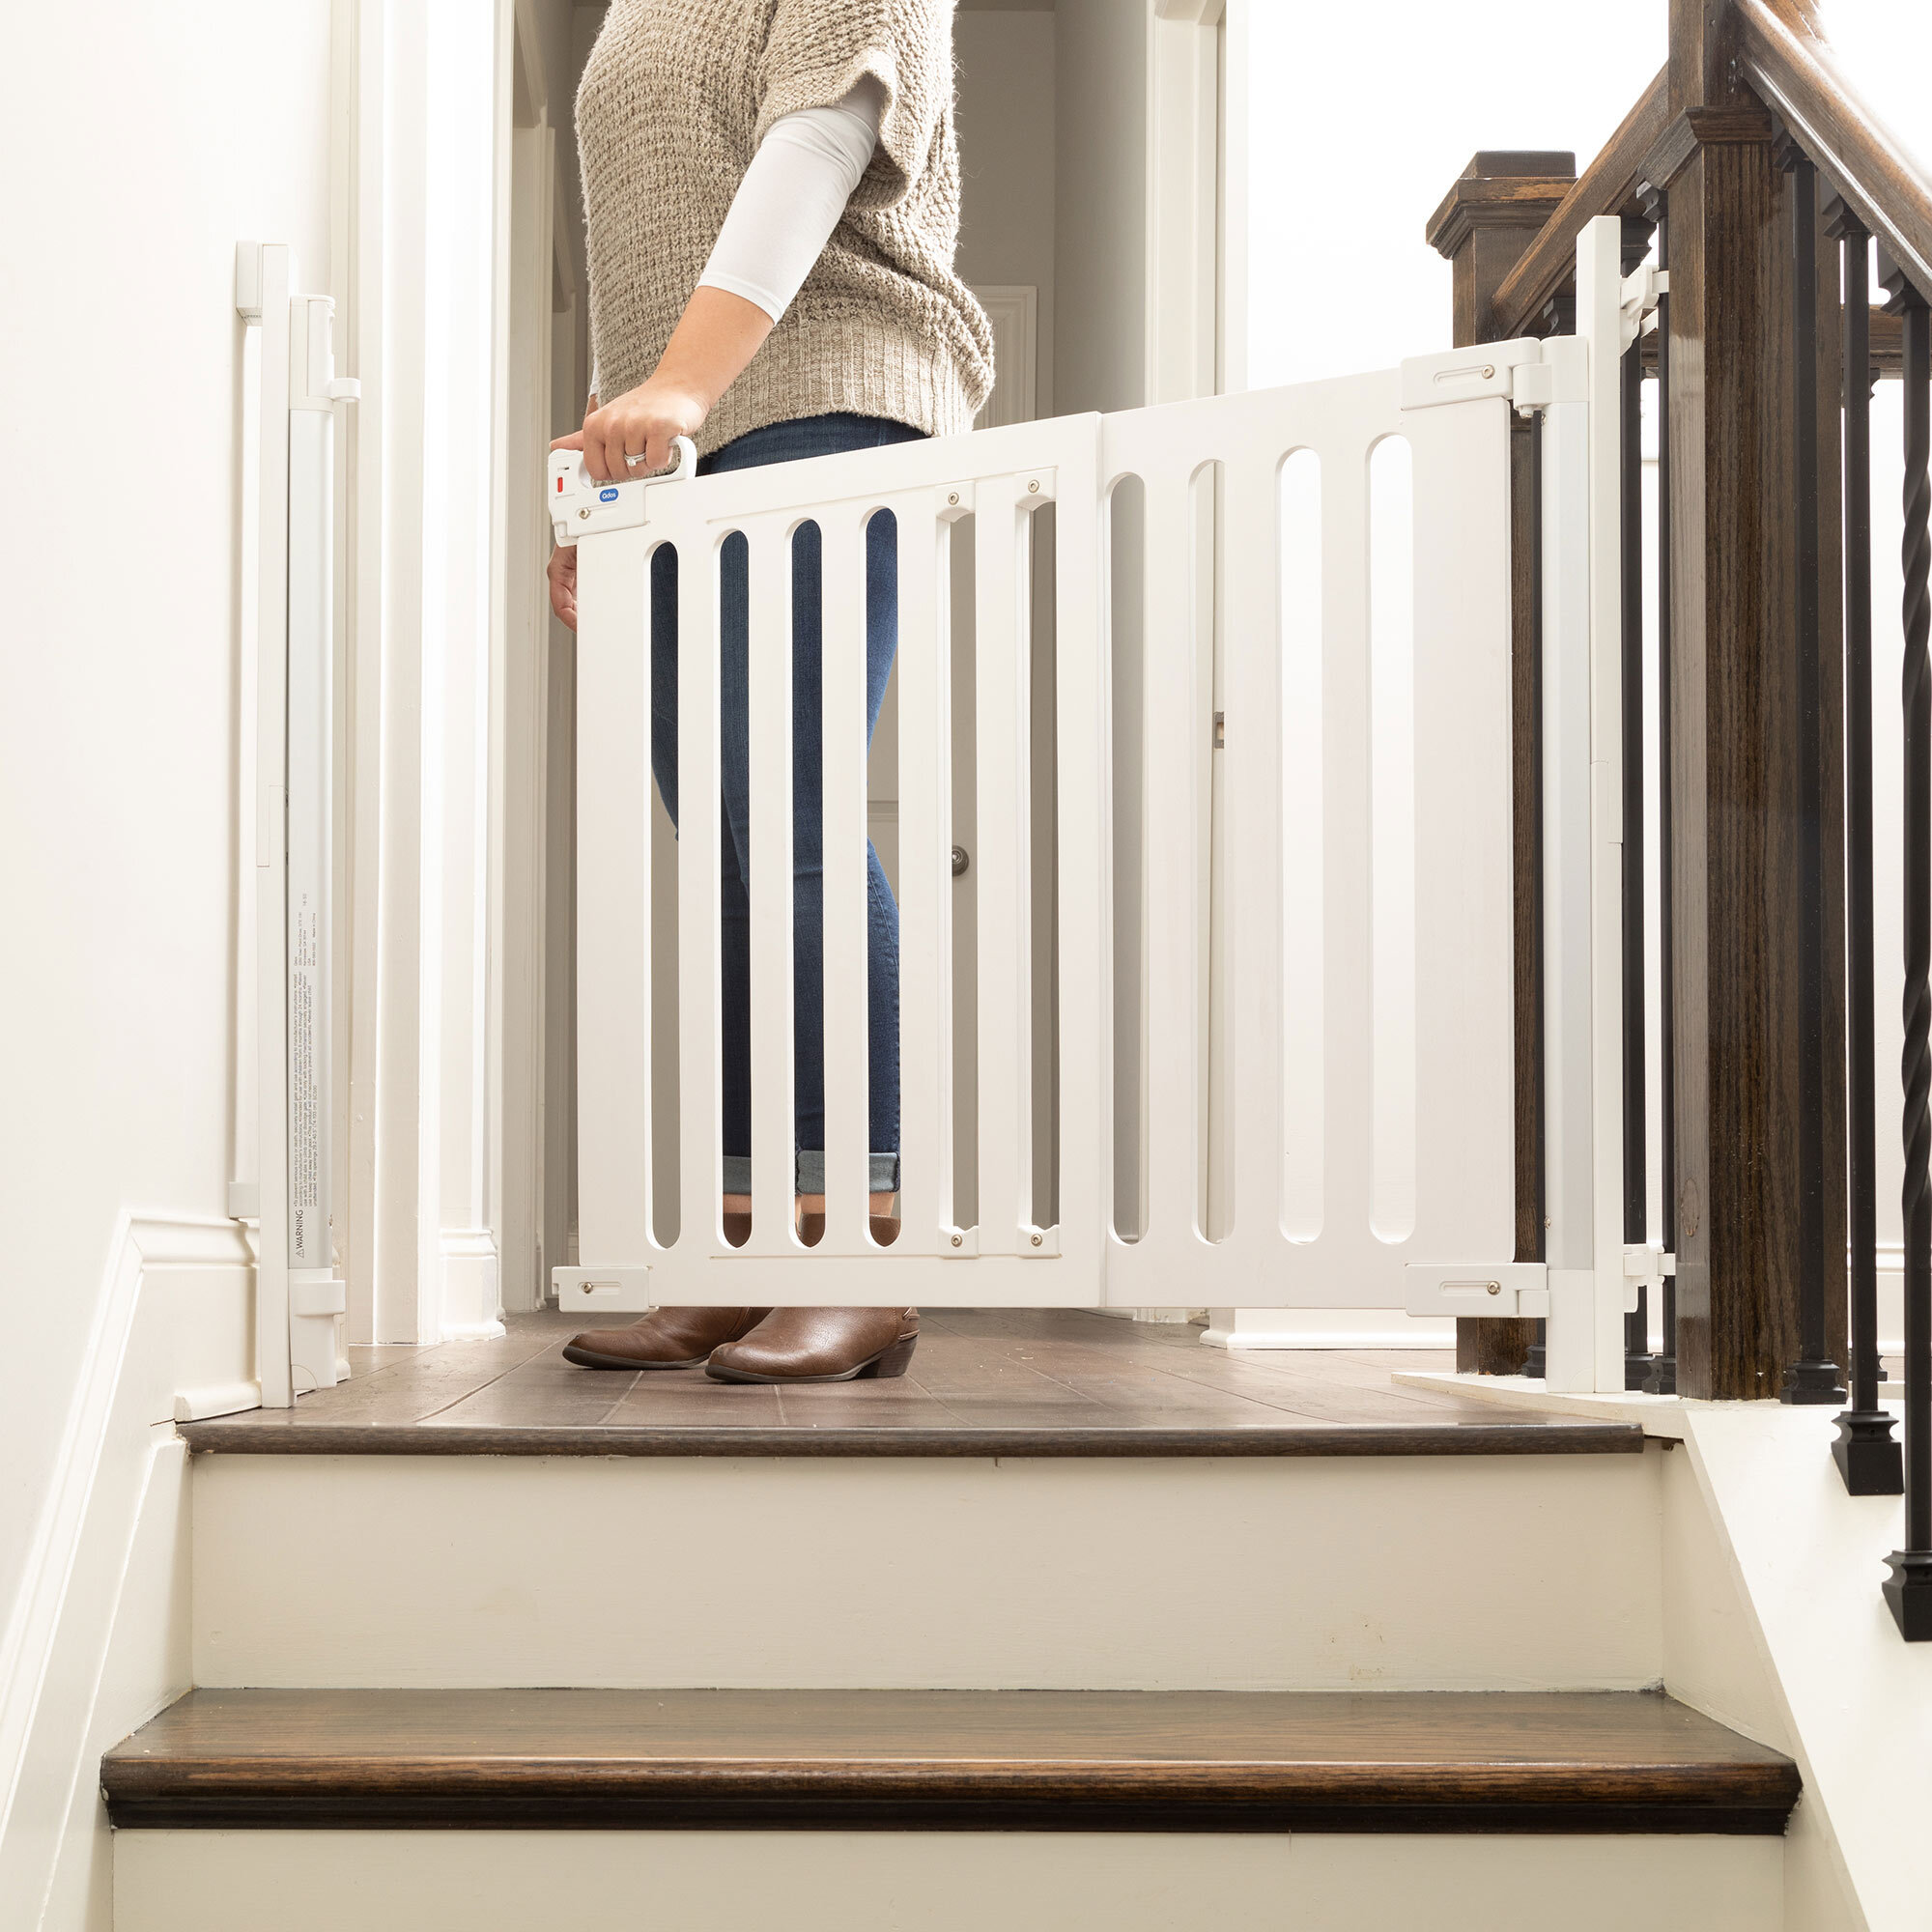 Spectrum Designer Baby Gate Hardware Mount Qdos Baby Gates Child Safety And Baby Proofing Products Qdos Safety